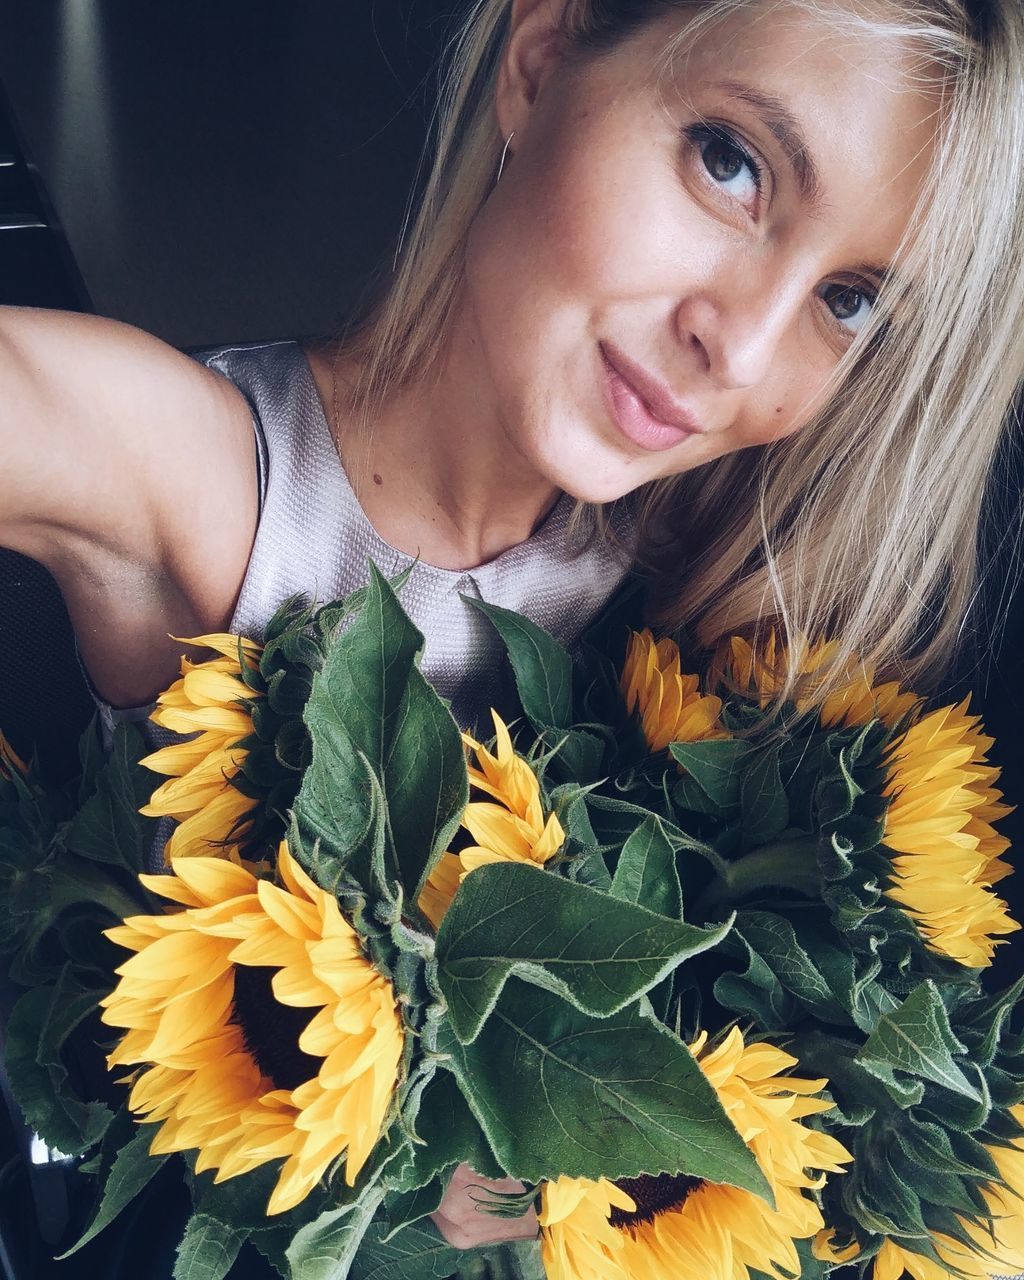 Portrait Of Woman With Sunflowers Traveling In Car